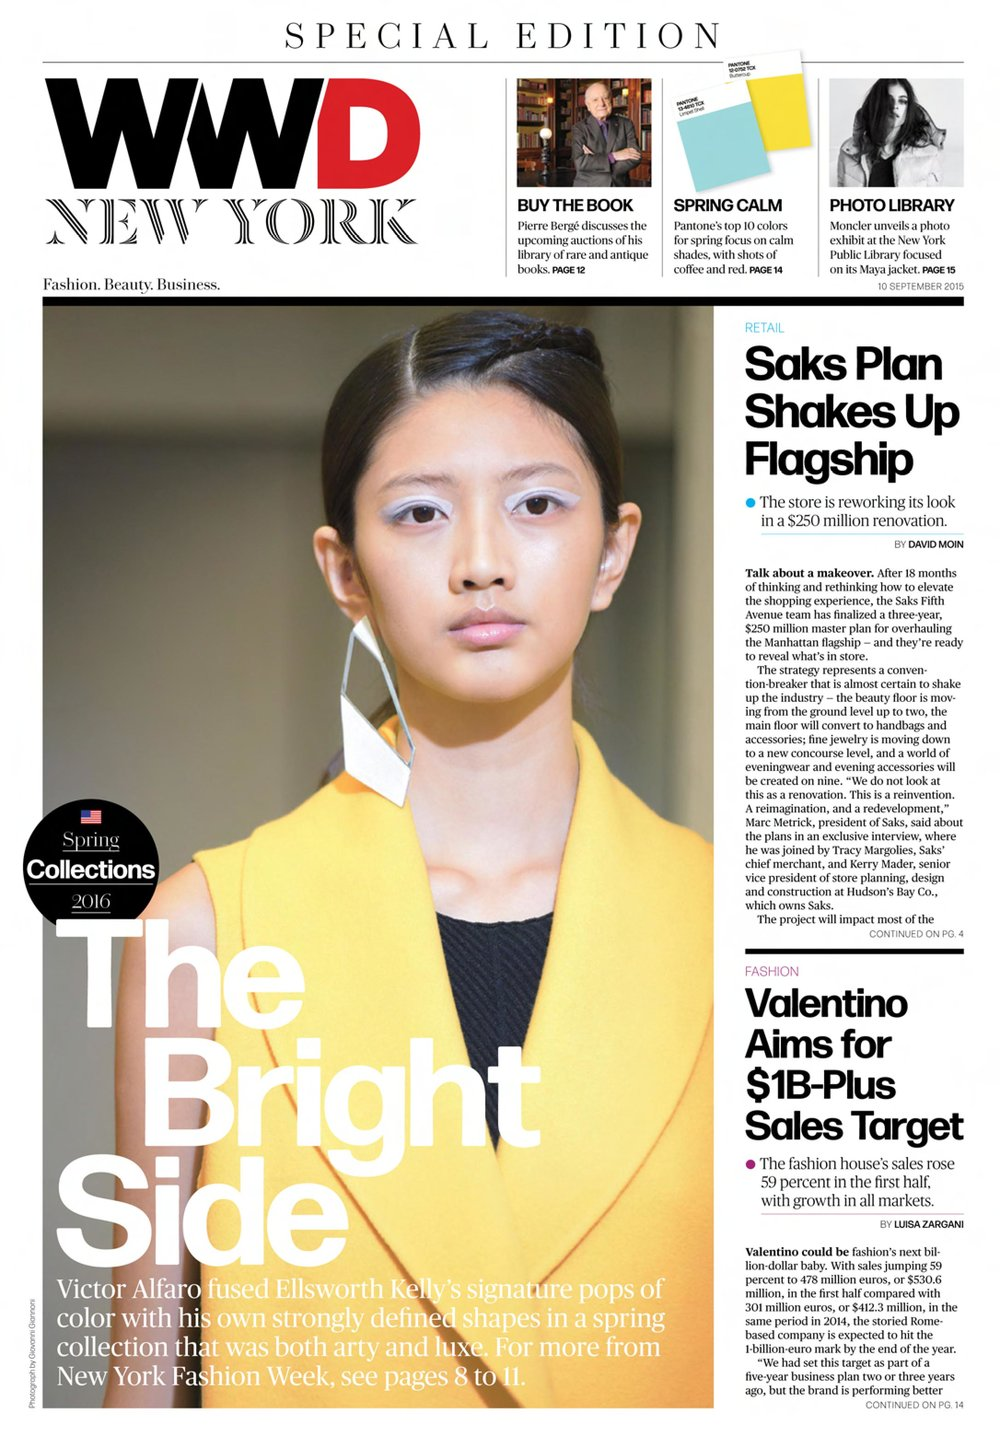 Victor Alfaro Spring 2016 Collection on cover of Women's Wear Daily